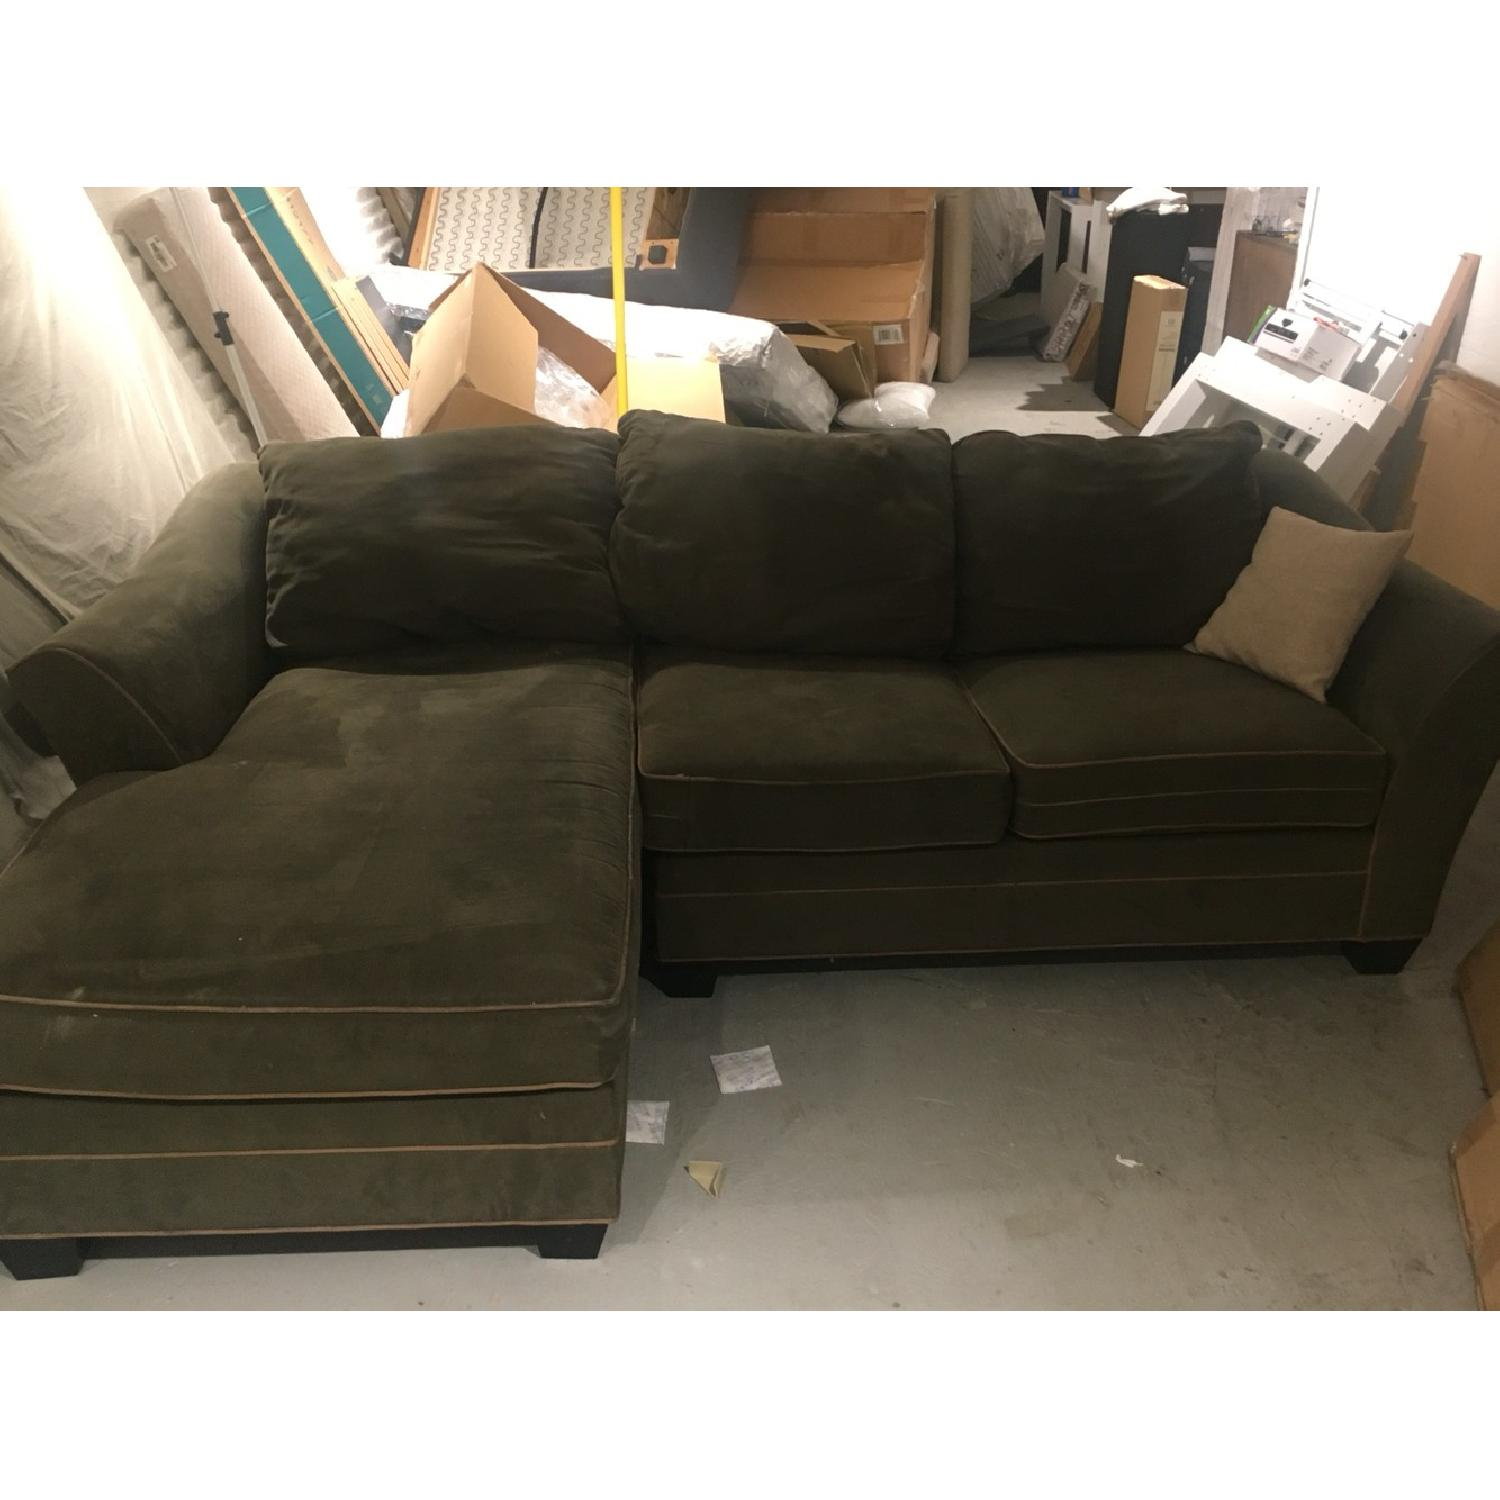 Green L Sectional Sofa - image-1